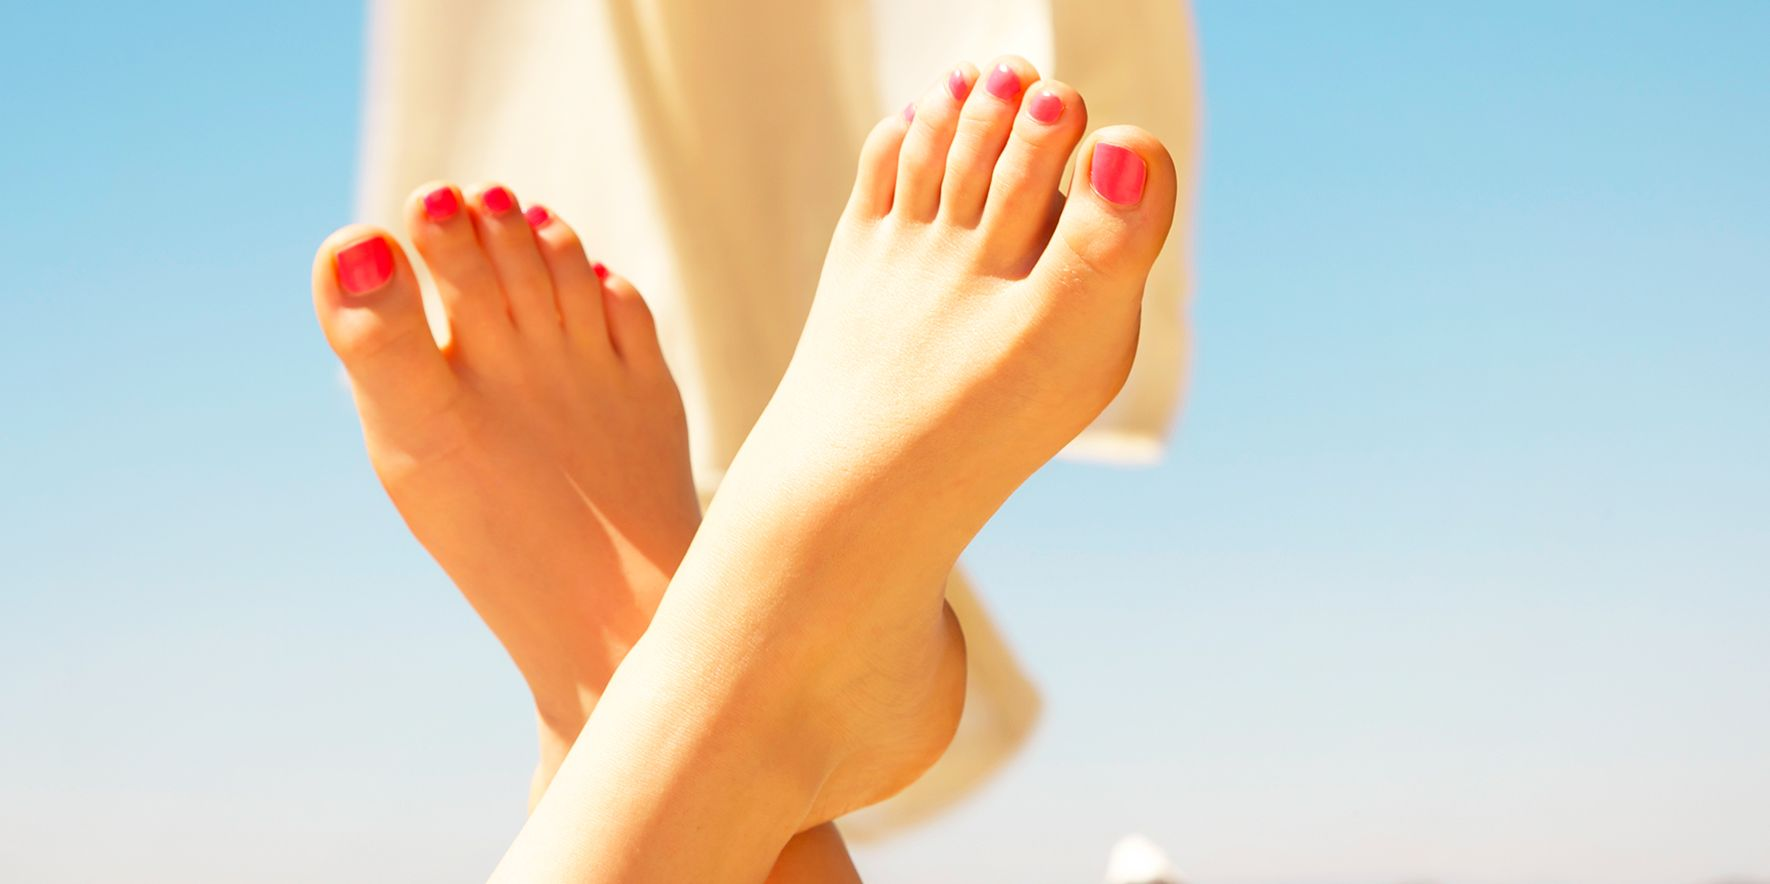 10 Things to Know About Toe Sucking